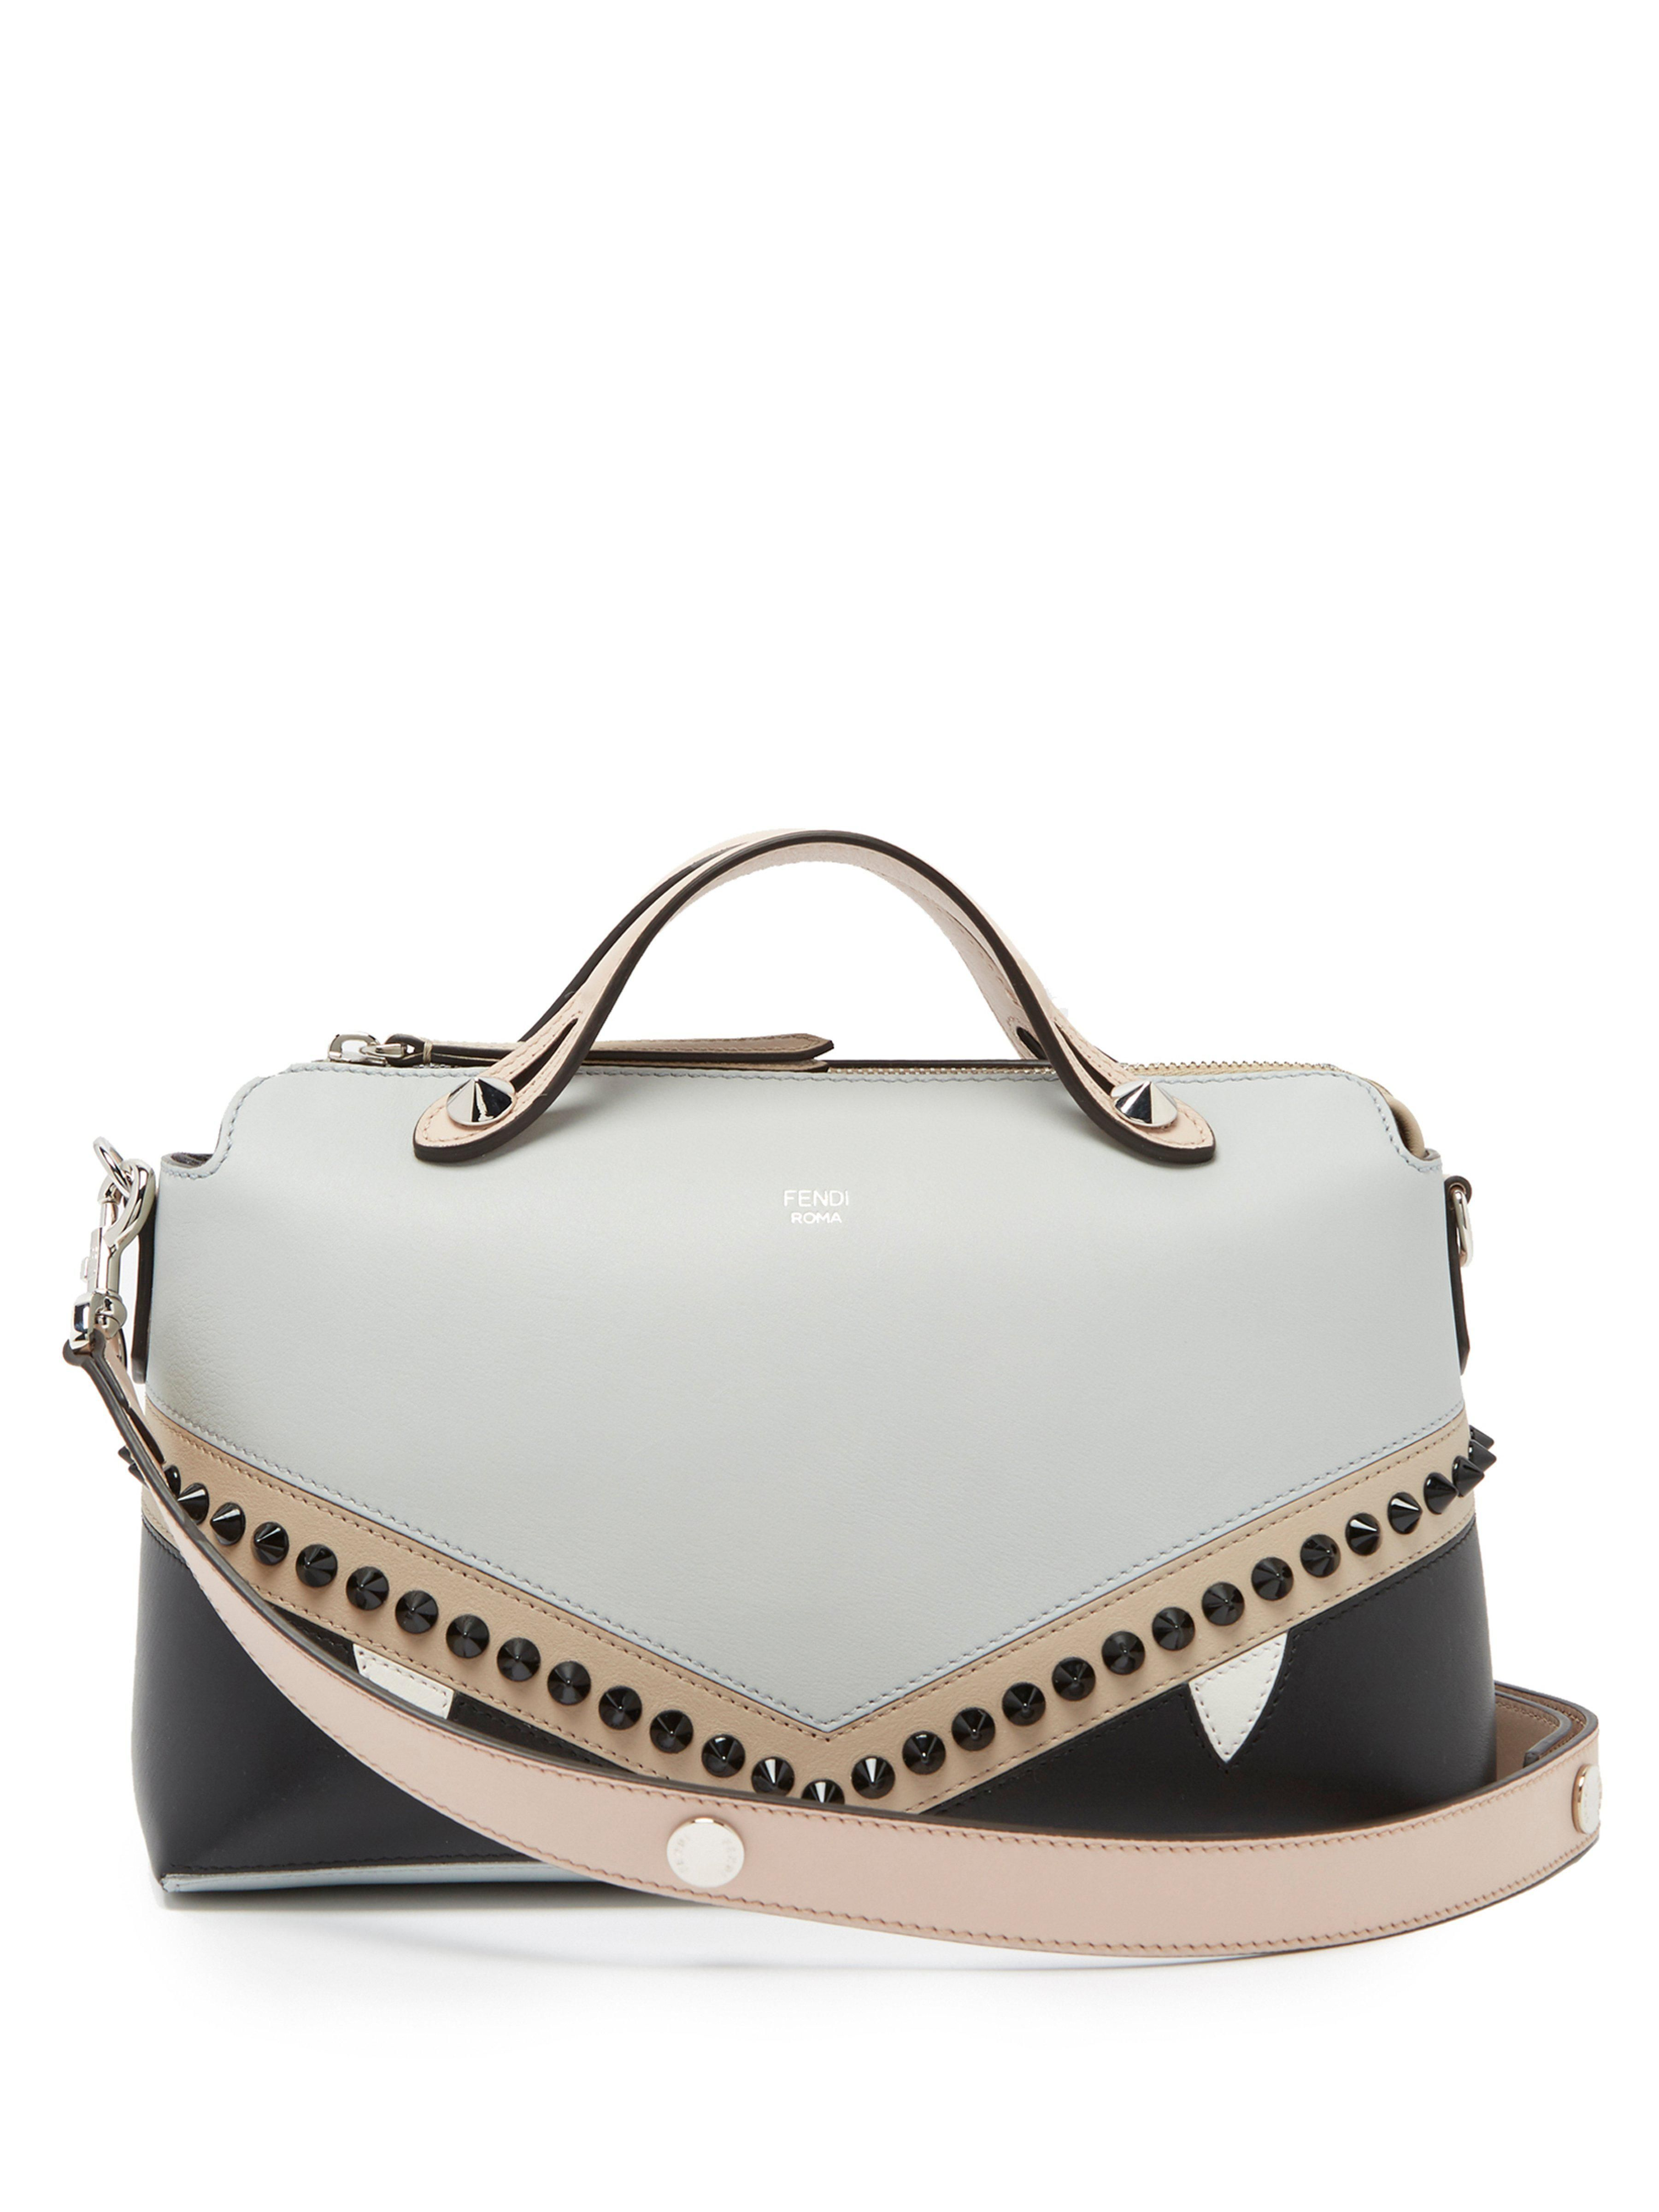 7f885414a1a Women's By The Way Monster Eyes Mini Bag in 2019   shoulder bags ...